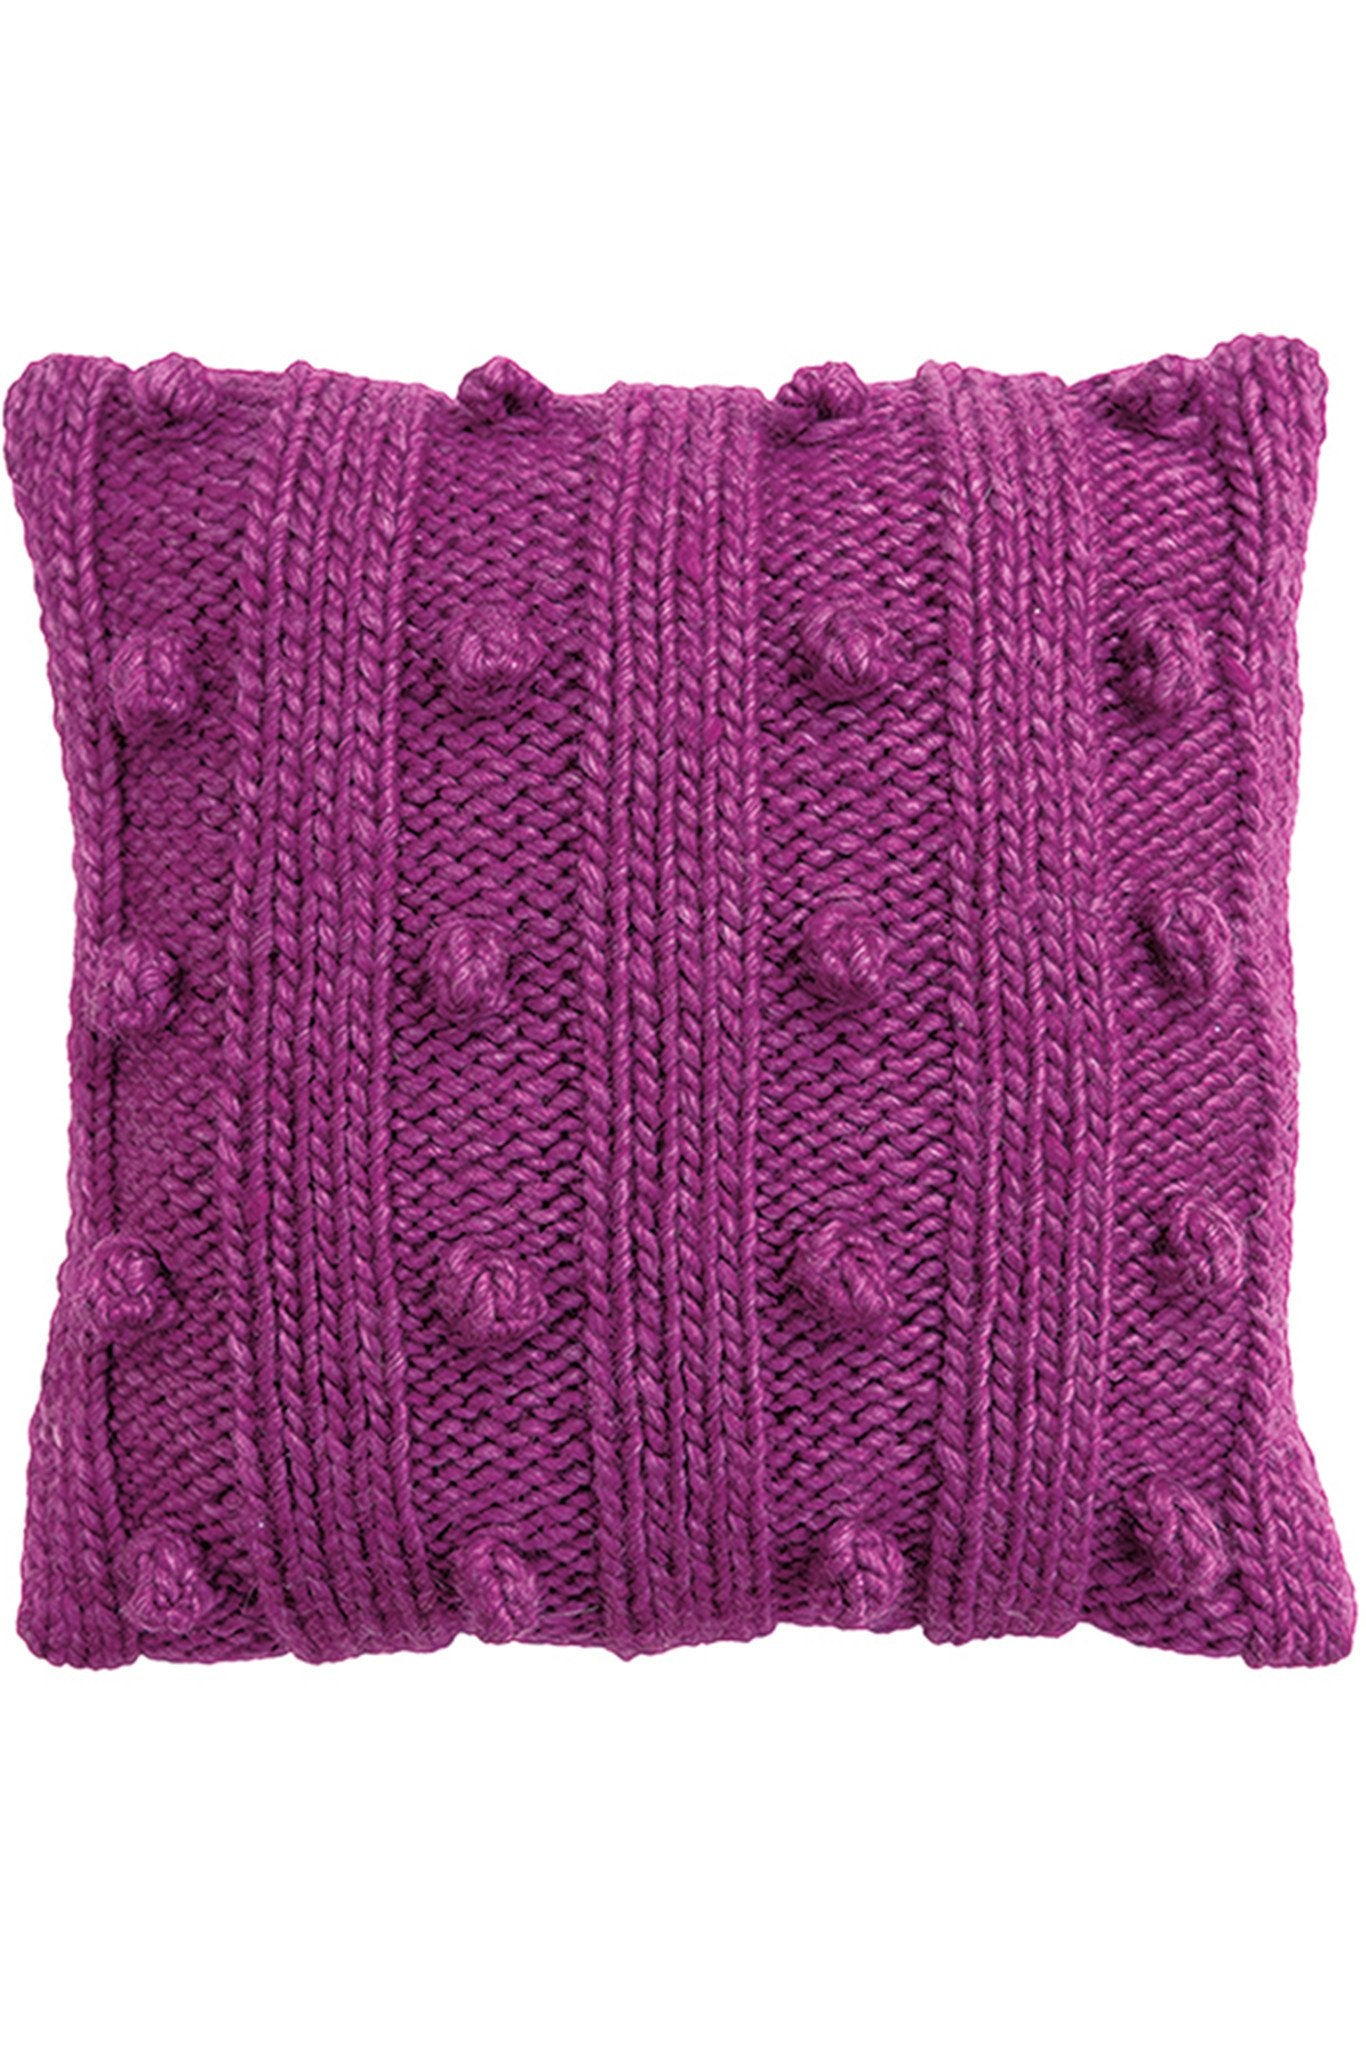 Set Of 4 Cushion Cover Knitting Patterns – The Knitting Network